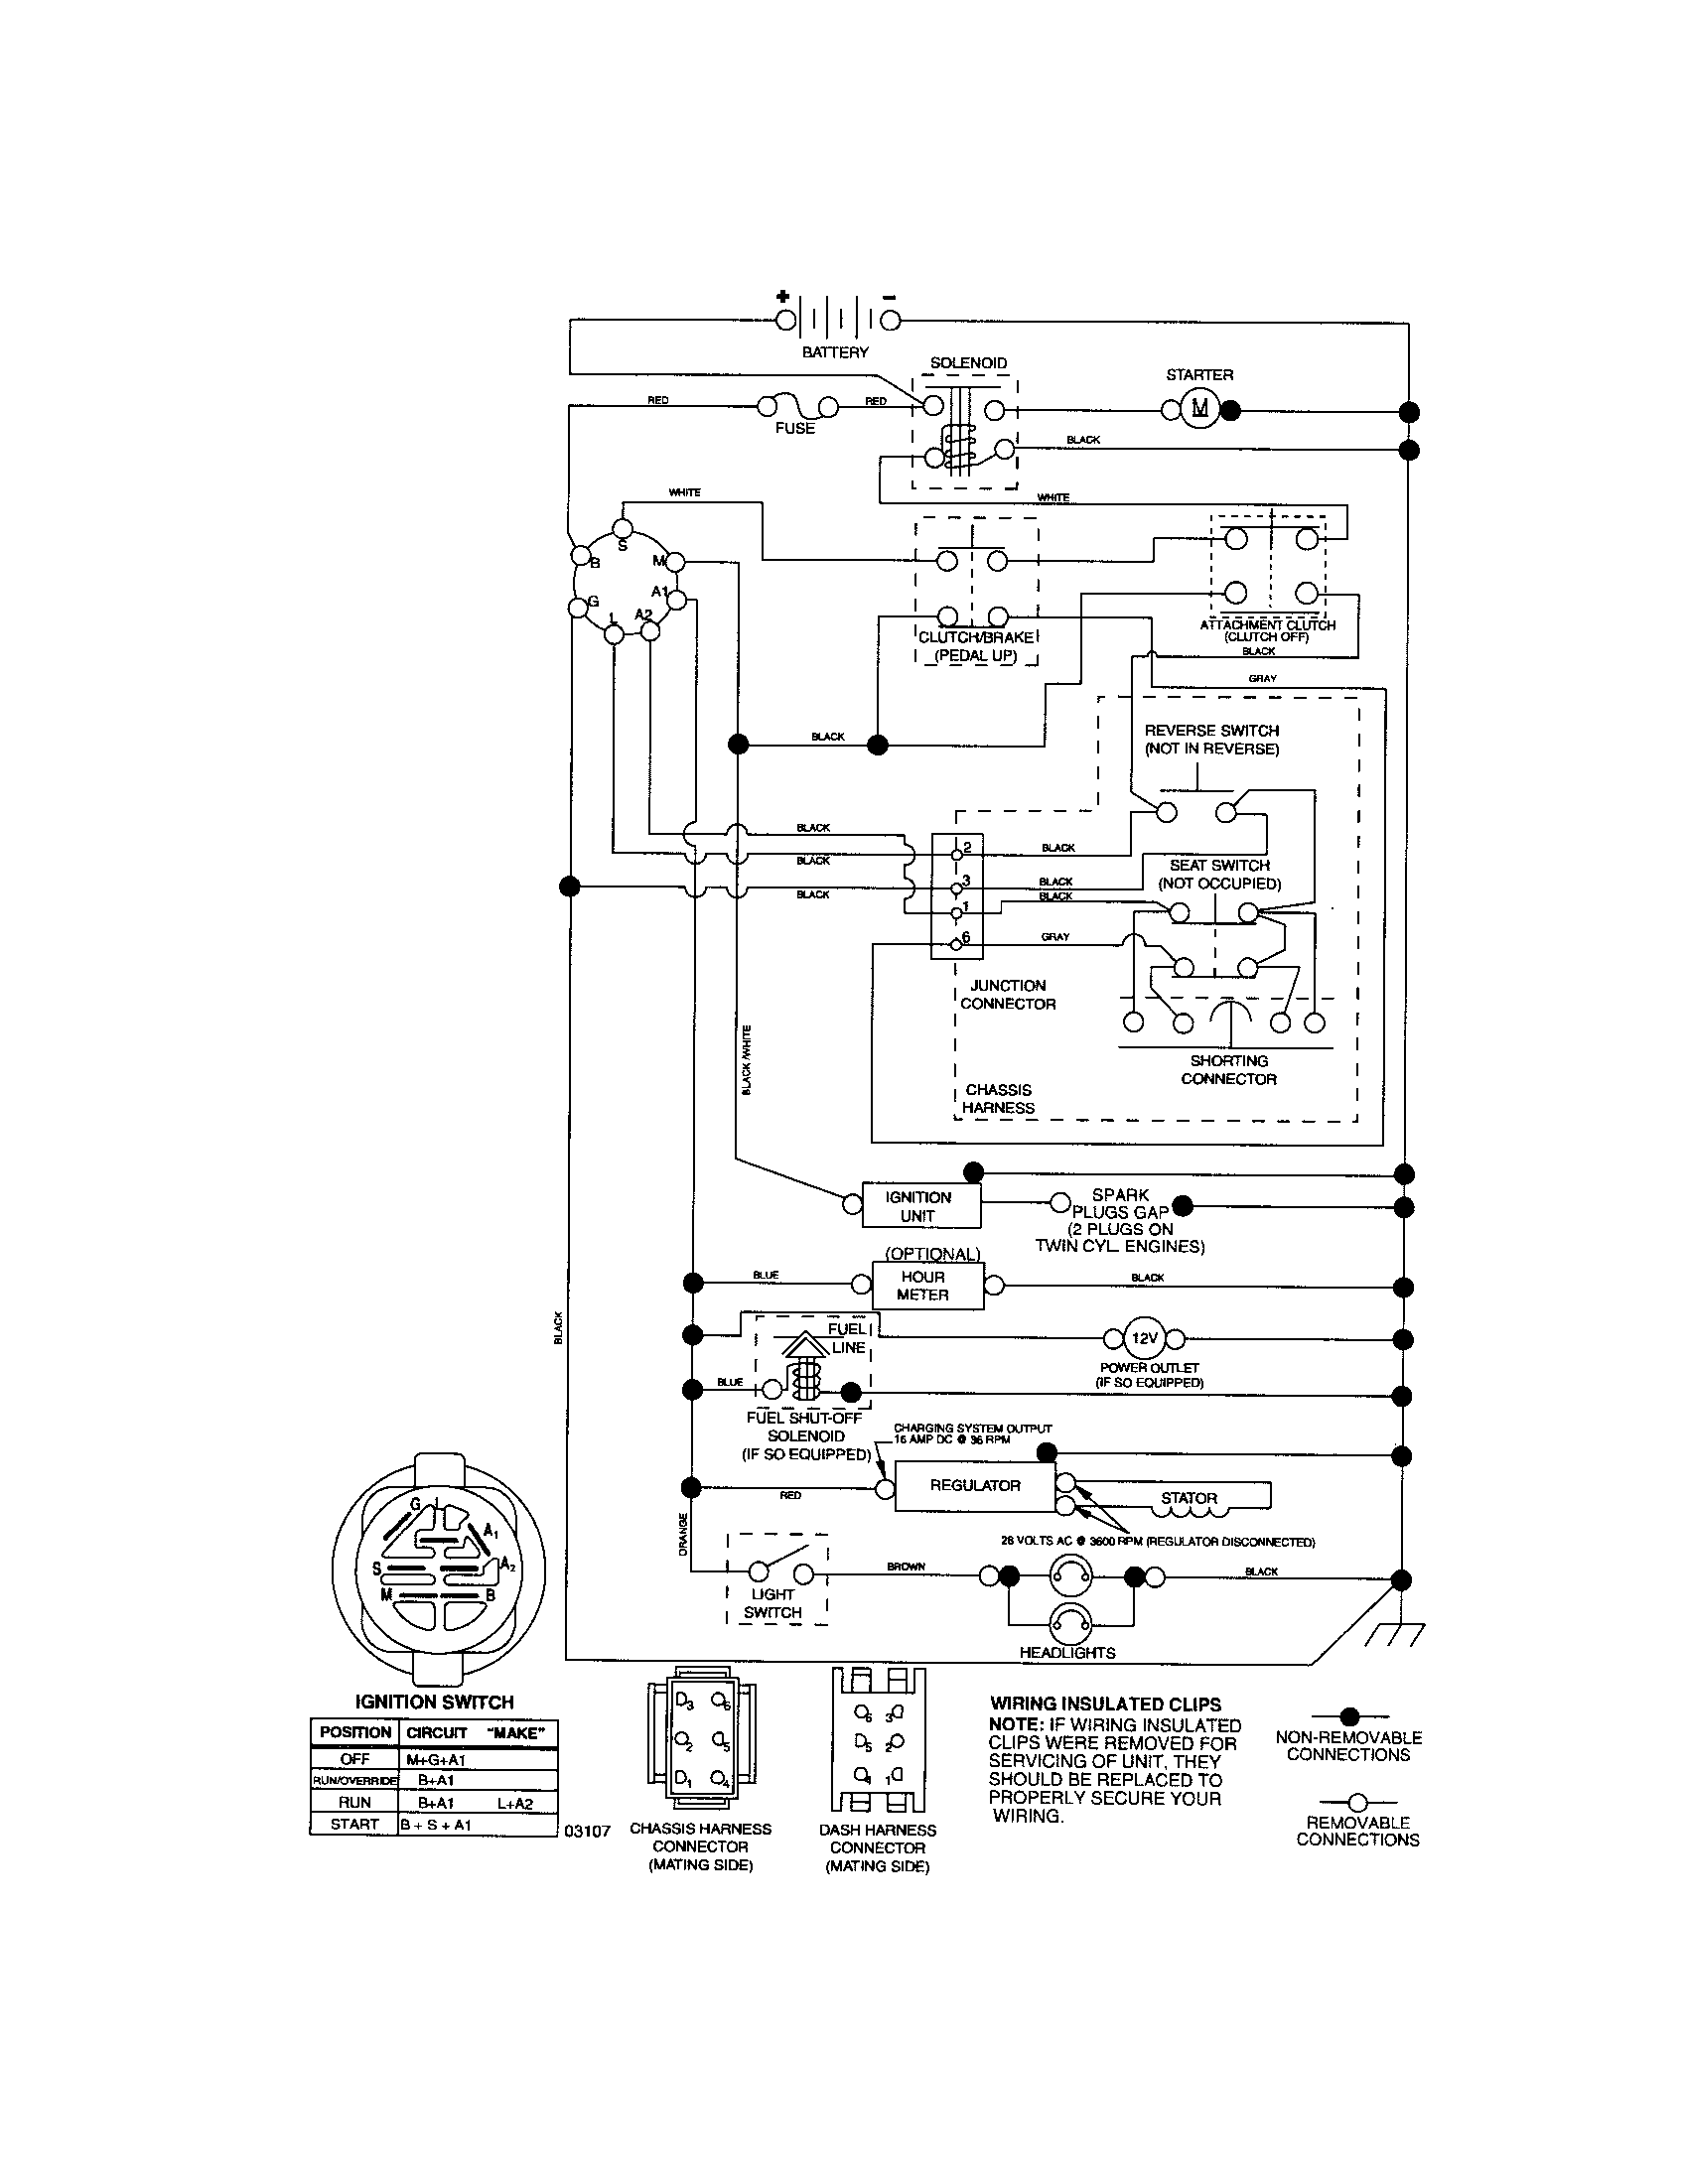 6af5f1447fd13c8443376822ddc1e105 craftsman riding mower electrical diagram wiring diagram craftsman riding mower wiring diagram at n-0.co